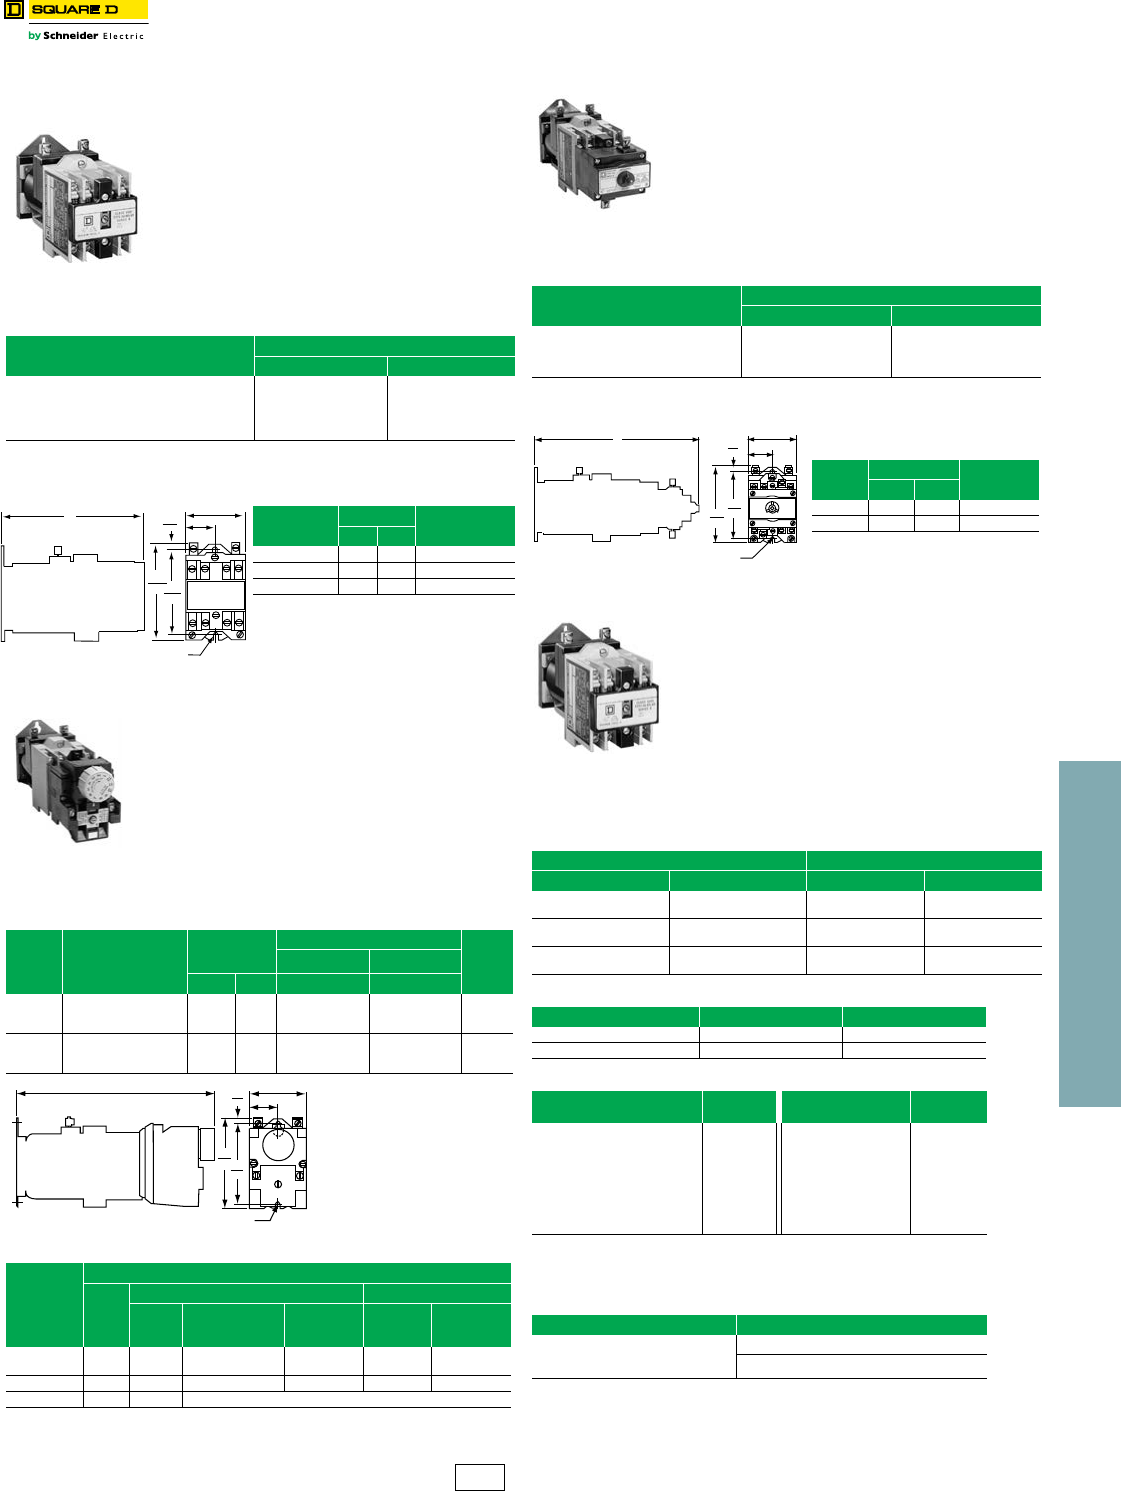 Product Detail Manual New Schneider Electric Zelior Solidstate Relays 23 And Timers